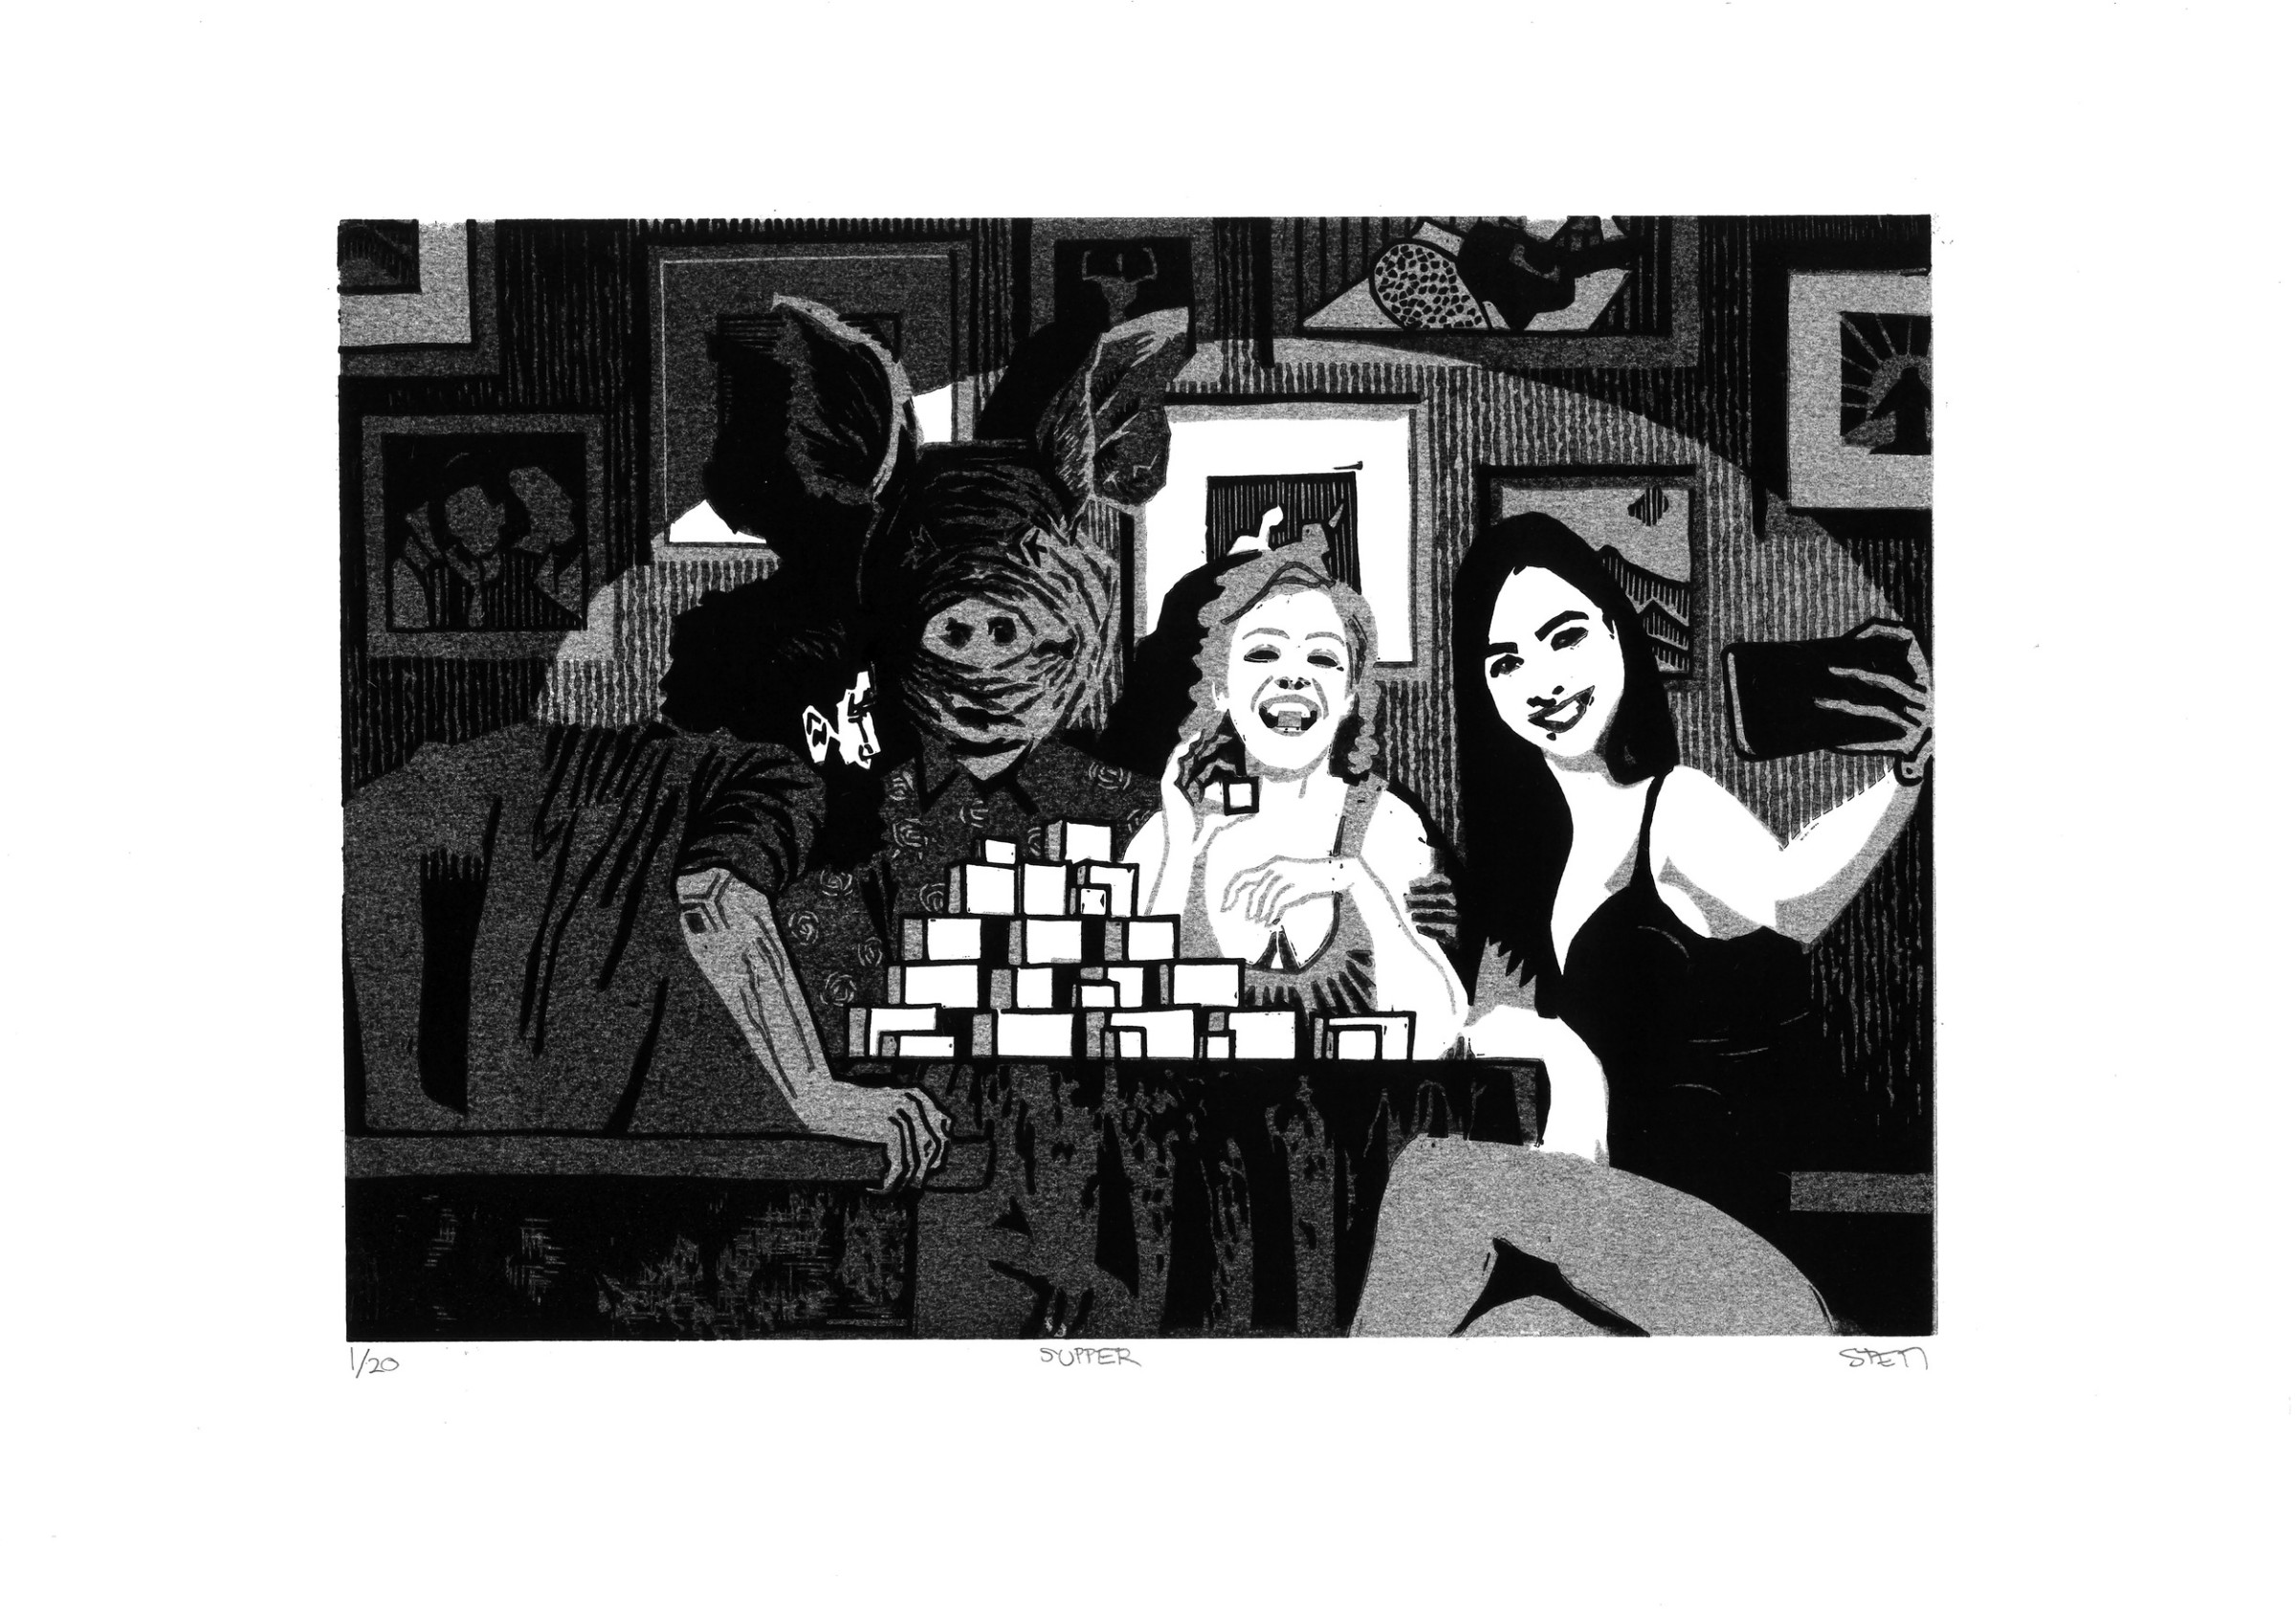 """<span class=""""link fancybox-details-link""""><a href=""""/exhibitions/17/works/image_standalone736/"""">View Detail Page</a></span><p><strong>Stepan Martinovsky</strong></p><p>Supper</p><p>linocut, ed of 20</p><p>42 x 30cm</p><p>£200 framed</p><p>£150 unframed</p>"""